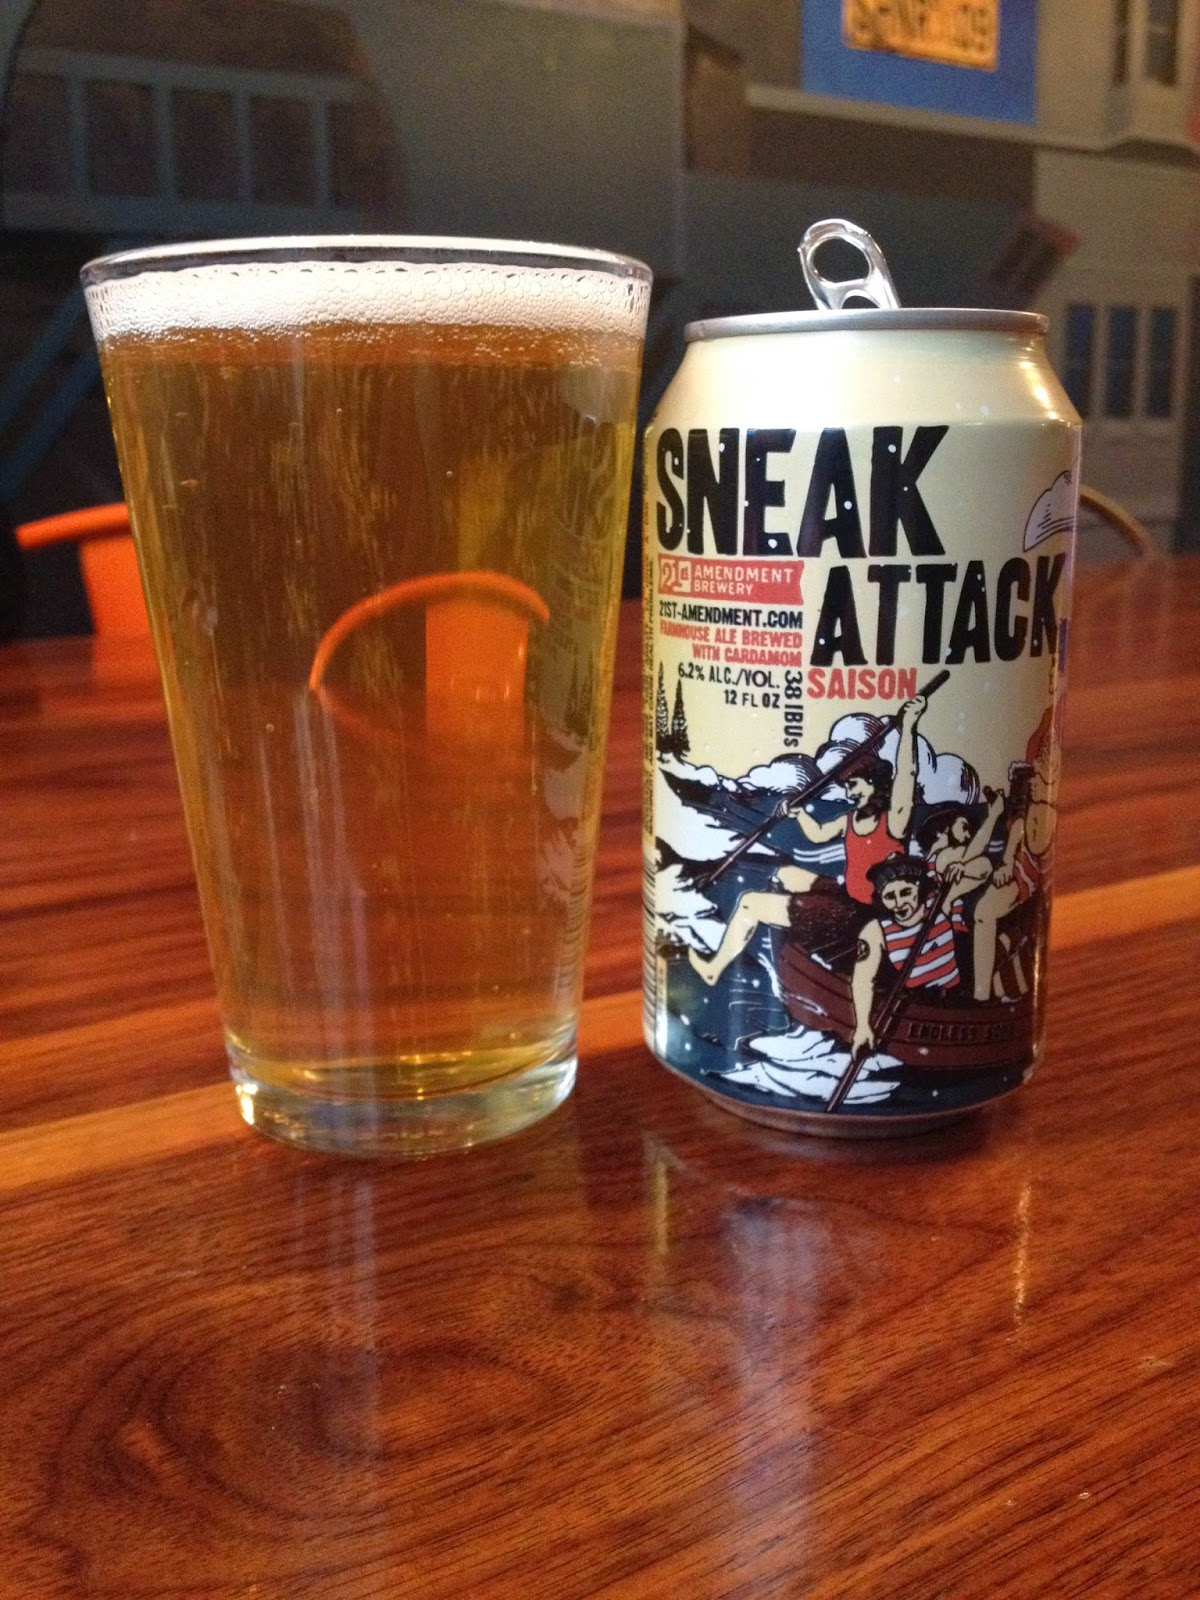 Beer Review (45): 21st Amendment Brewery Sneak Attack Saison--Brewery: 21st Amendment Brewery Beer: Saison | Beer Advocate Score: 81 Abv: 6.2%     It's been a minute since I've had a good farmhouse ale.  In fact, the last one of note was Brooklyn's Sorachi Ale.  So I was on the hunt for something to usher in the Spring-like weather we are finally having.   The Sneak Attack saison was refreshingly sweet and a little spicy.  It pours a light yellow color and has a bubbly yet light mouth feel.  And check out that sweet design!     21st Amendment is one of my personal favorites and continually brings good beer to the masses.  I even made a special visit to their brewery last May!  This is already on the grocery list for Easter.